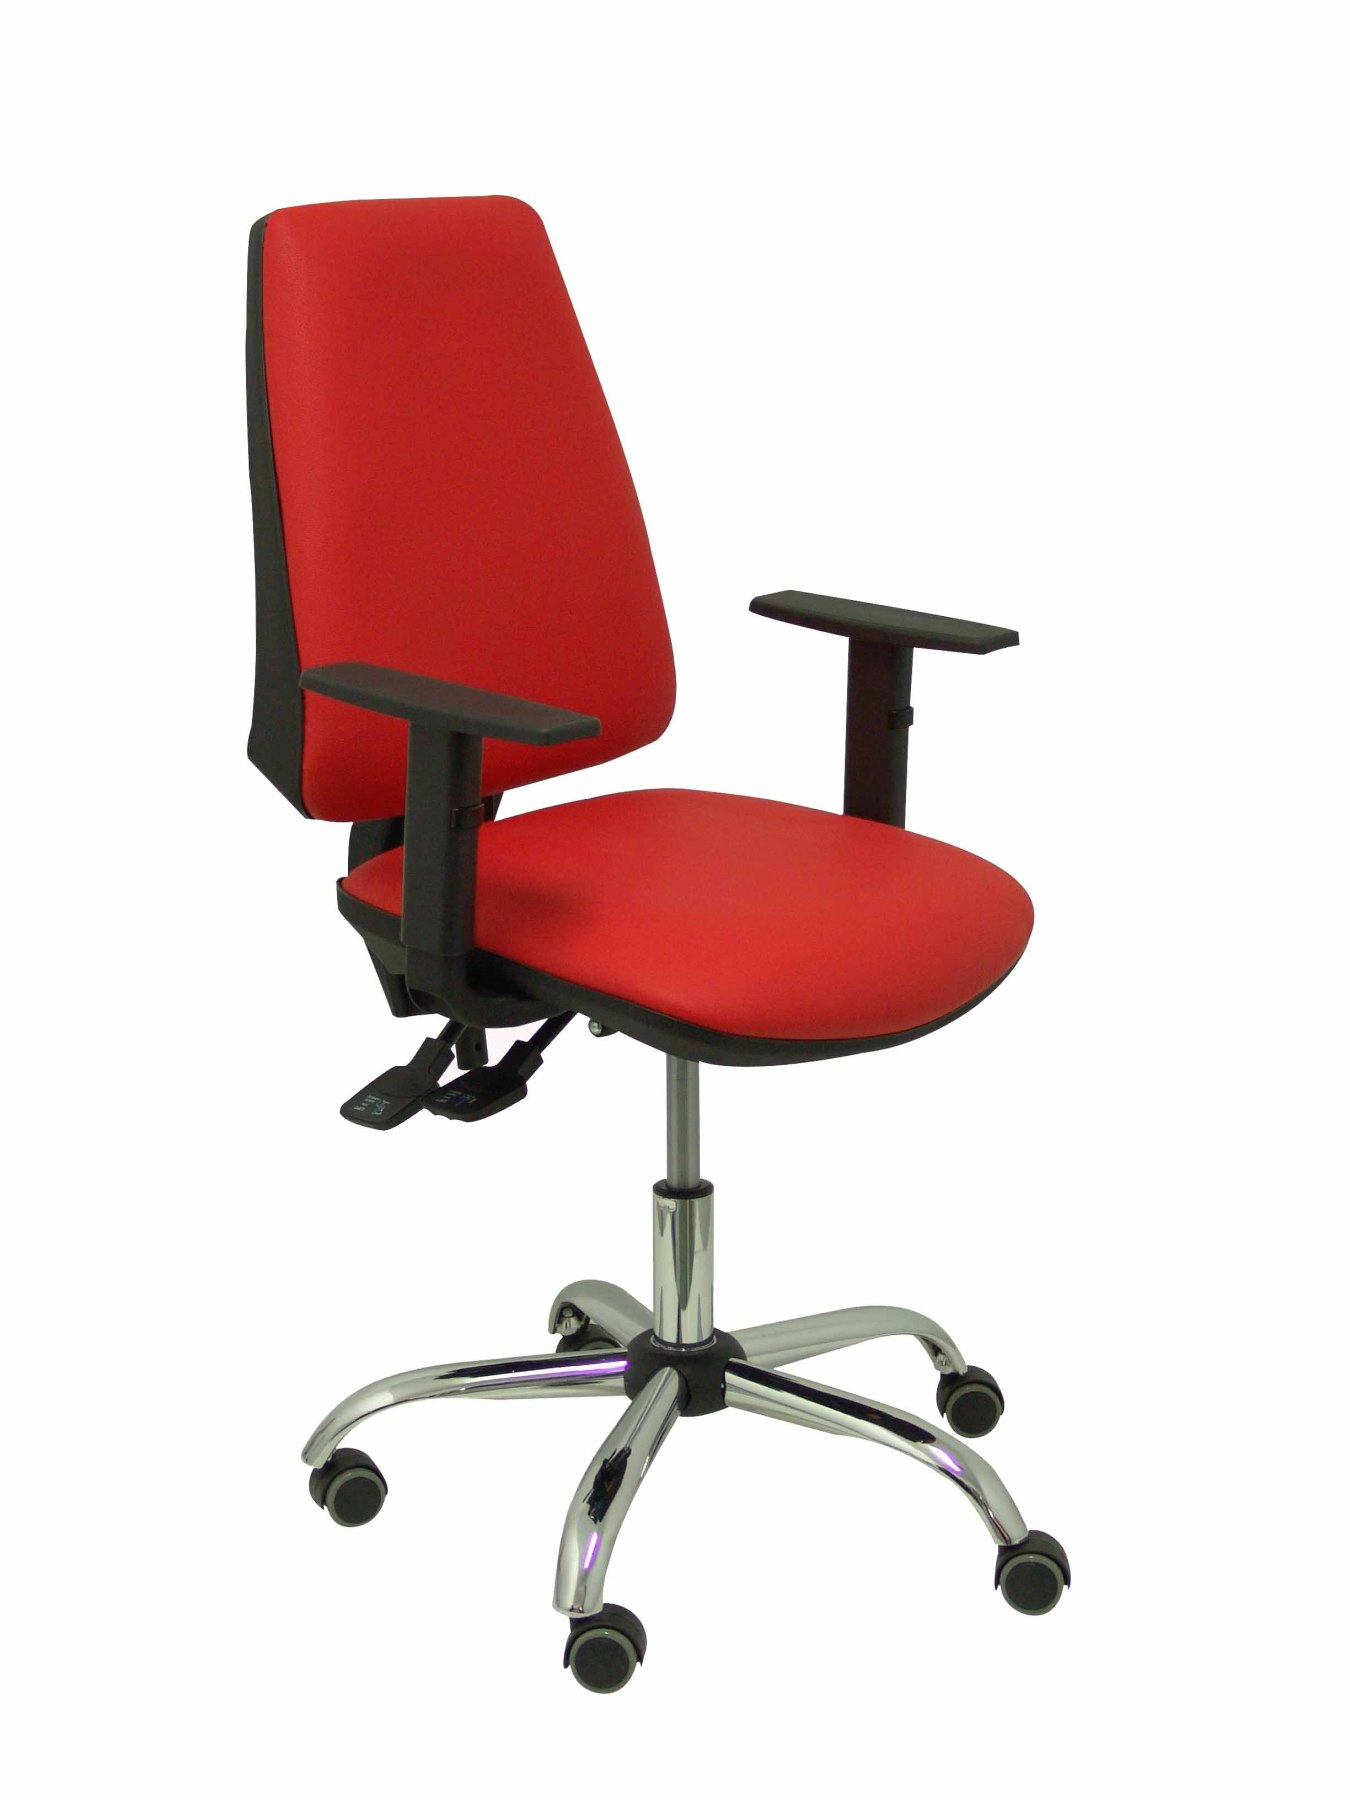 Ergonomic Office Chair With Mechanism Synchro And Adjustable Height-Seat And Backrest Cushion Fabric Similpi